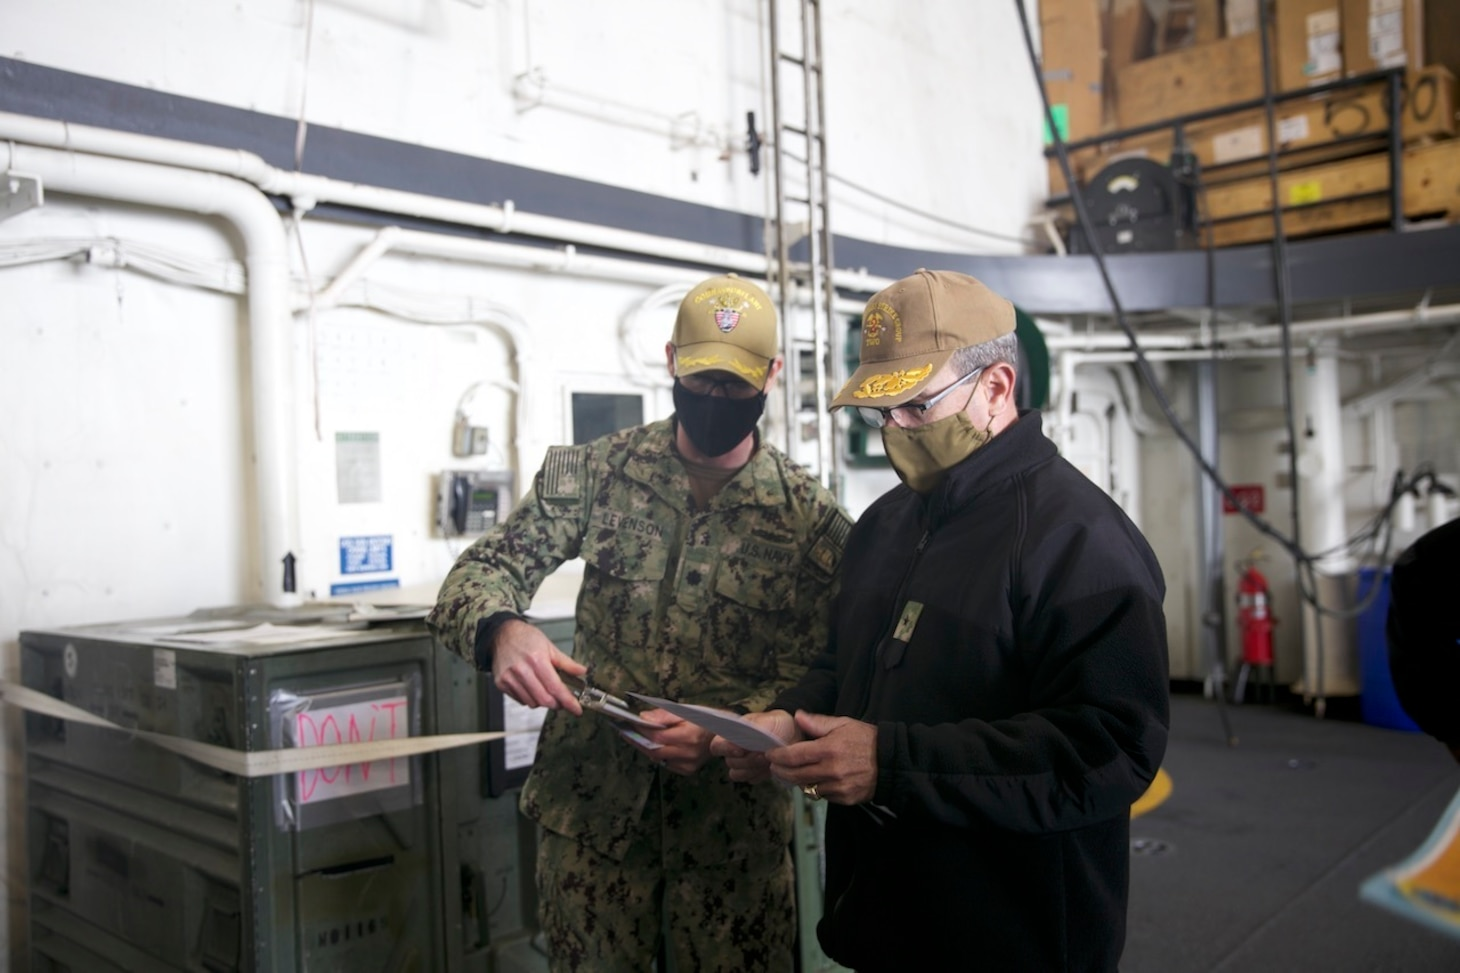 Rear Adm. Robert Katz, commander, Expeditionary Strike Group (ESG 2), reviews paperwork aboard the amphibious transport dock ship USS San Antonio (LPD 17) before receiving the COVID-19 vaccination, Jan. 11, 2021.